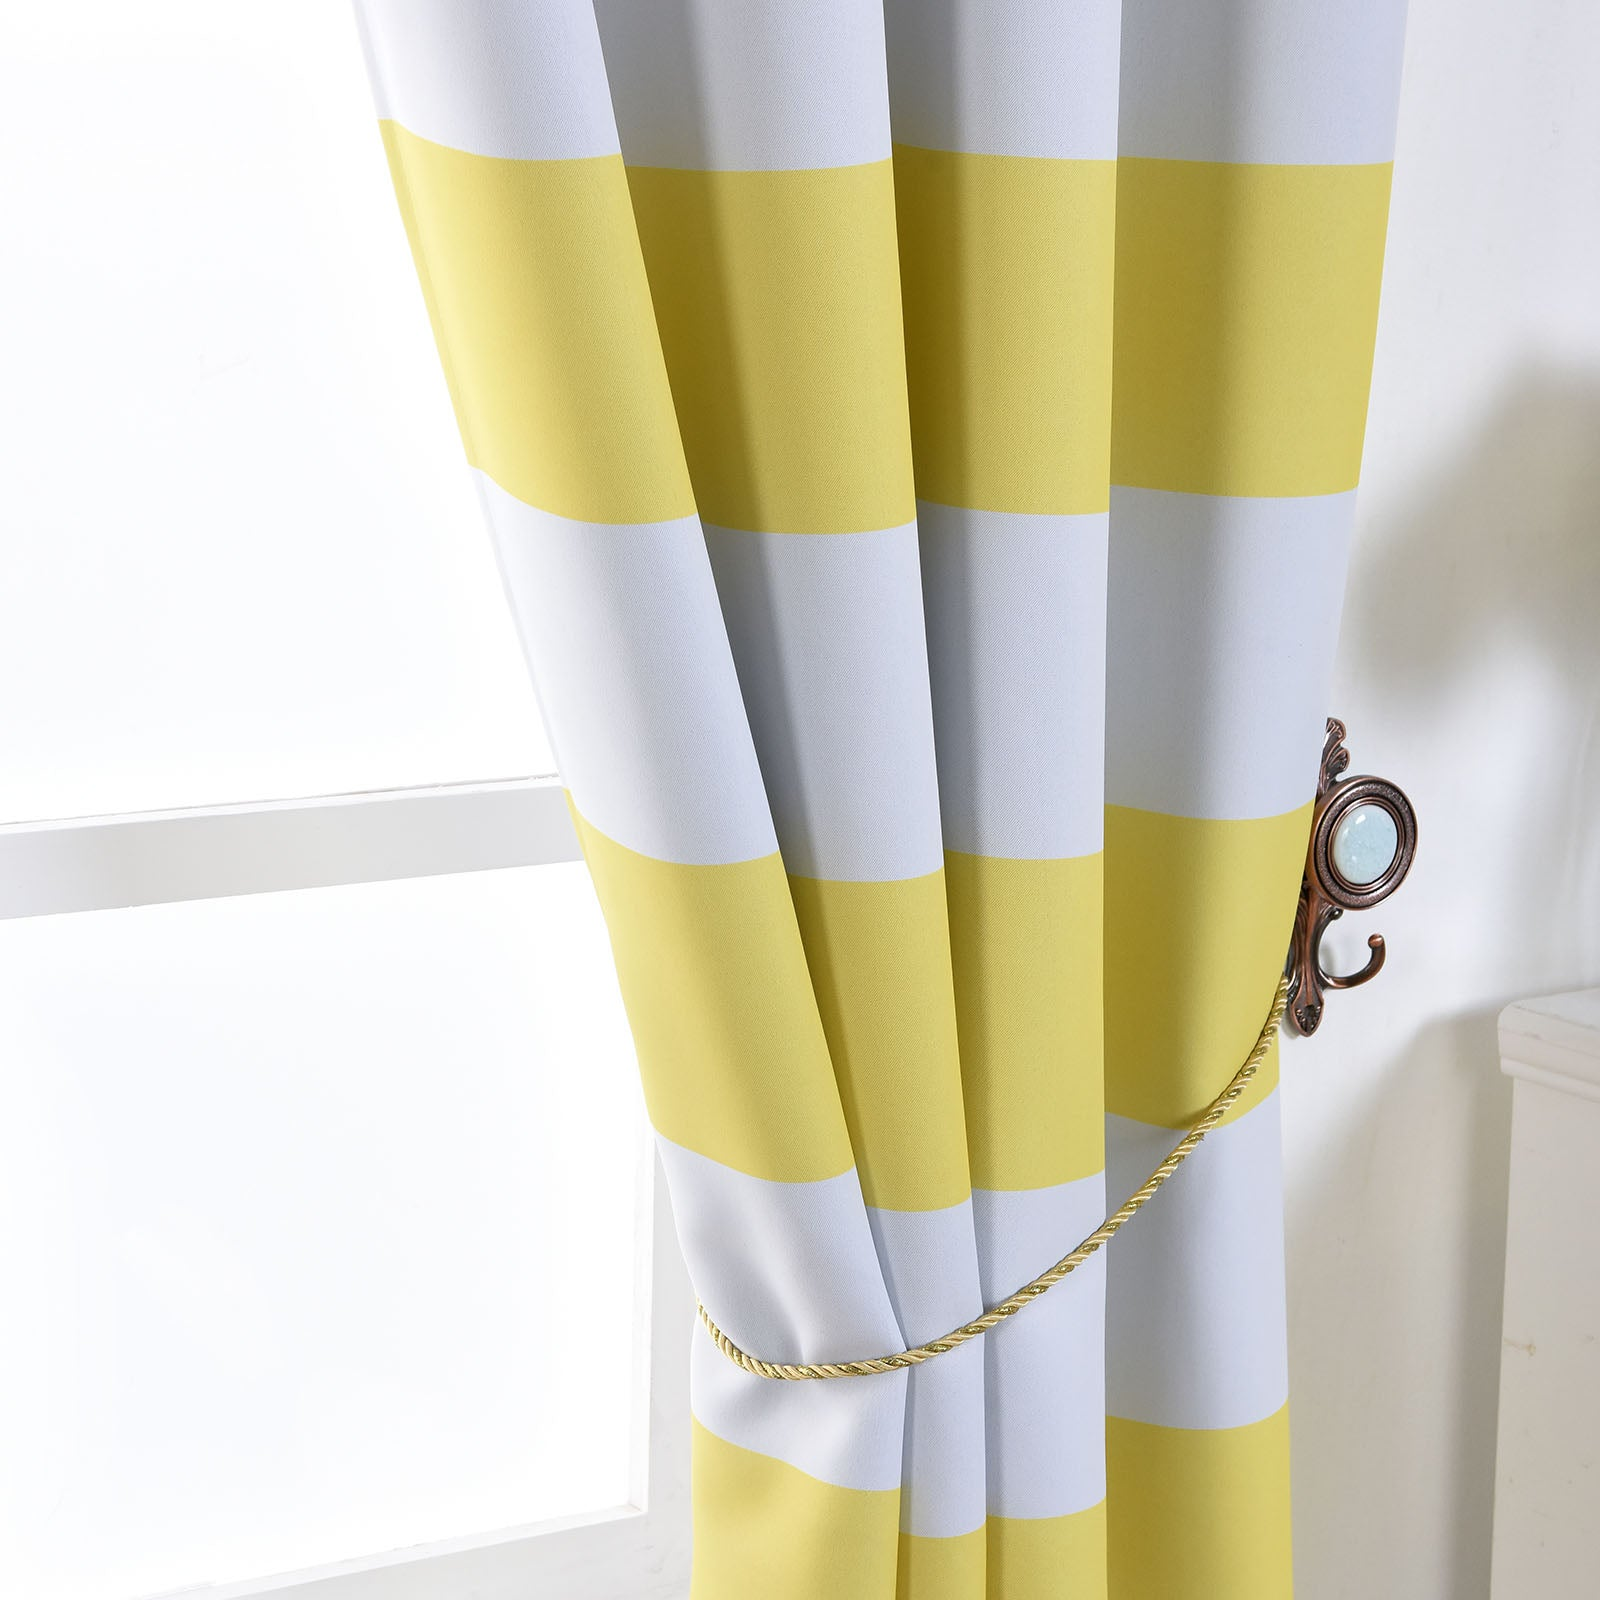 grommet window reviews curtain pdx posts single blackout curtains striped wayfair thermal arrowsmith panel three treatments